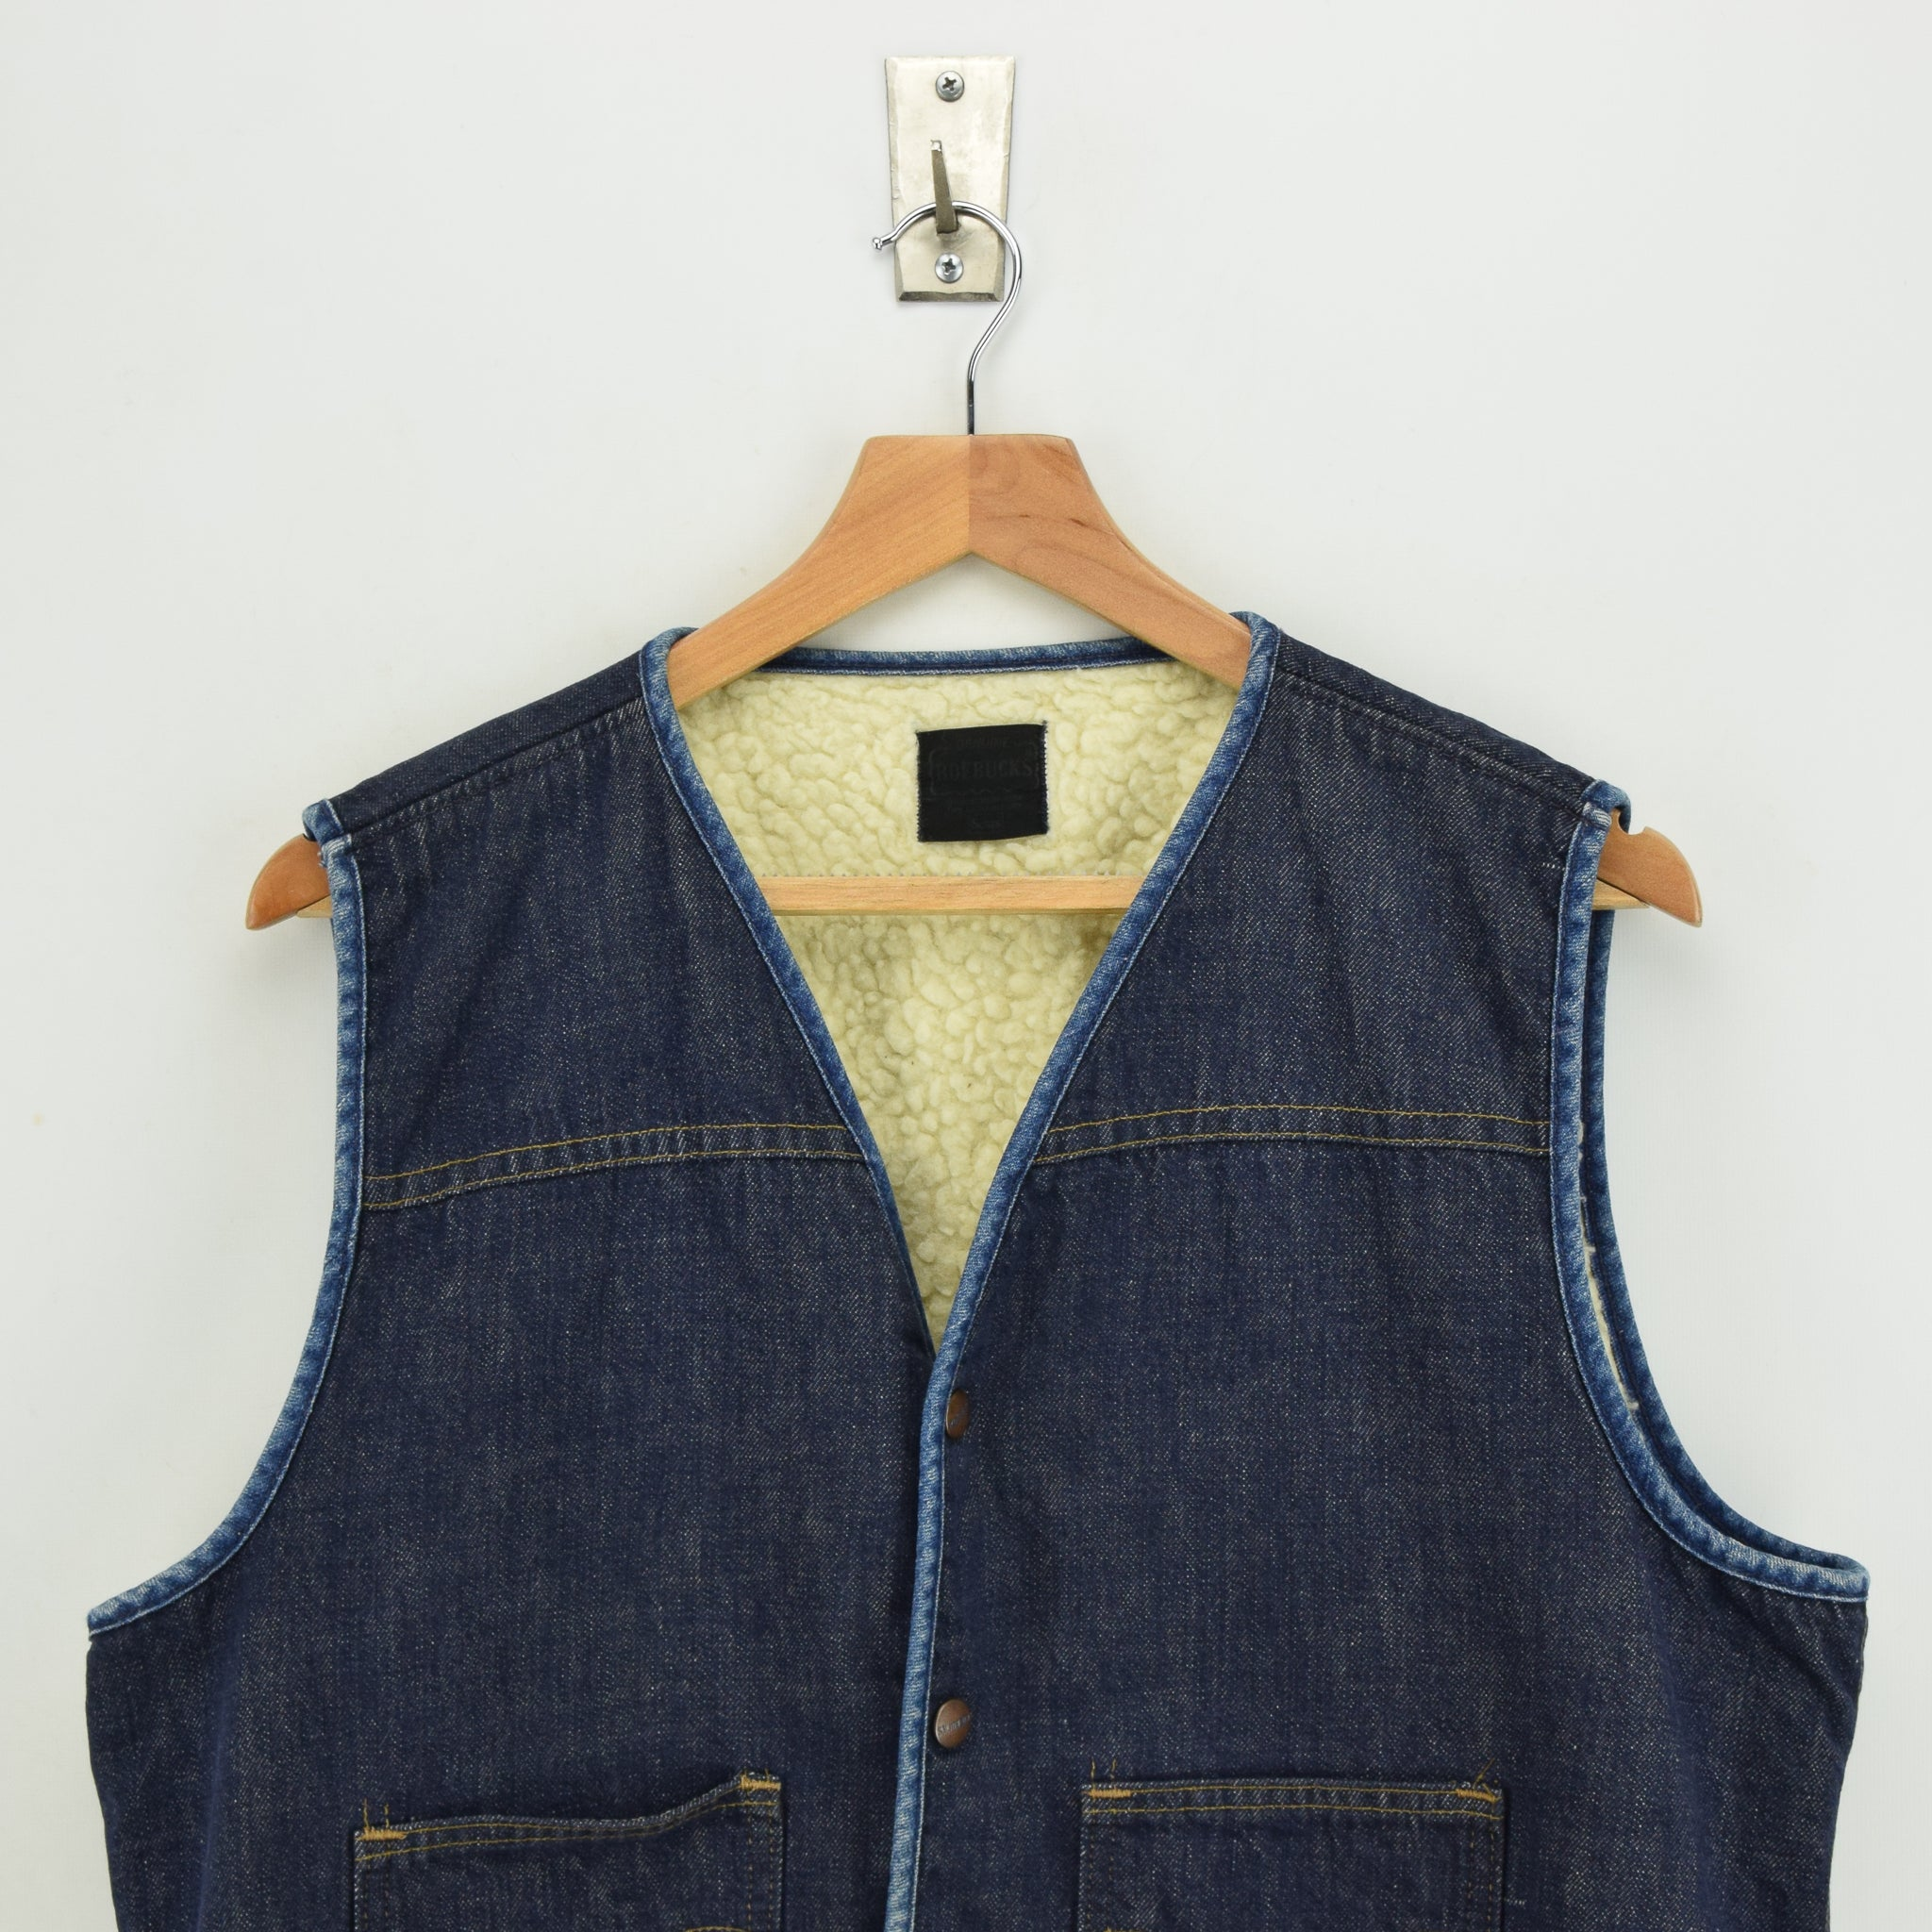 Vintage Sears Roebucks Blue Gilet Cotton Denim Waistcoat Vest Made in USA L chest